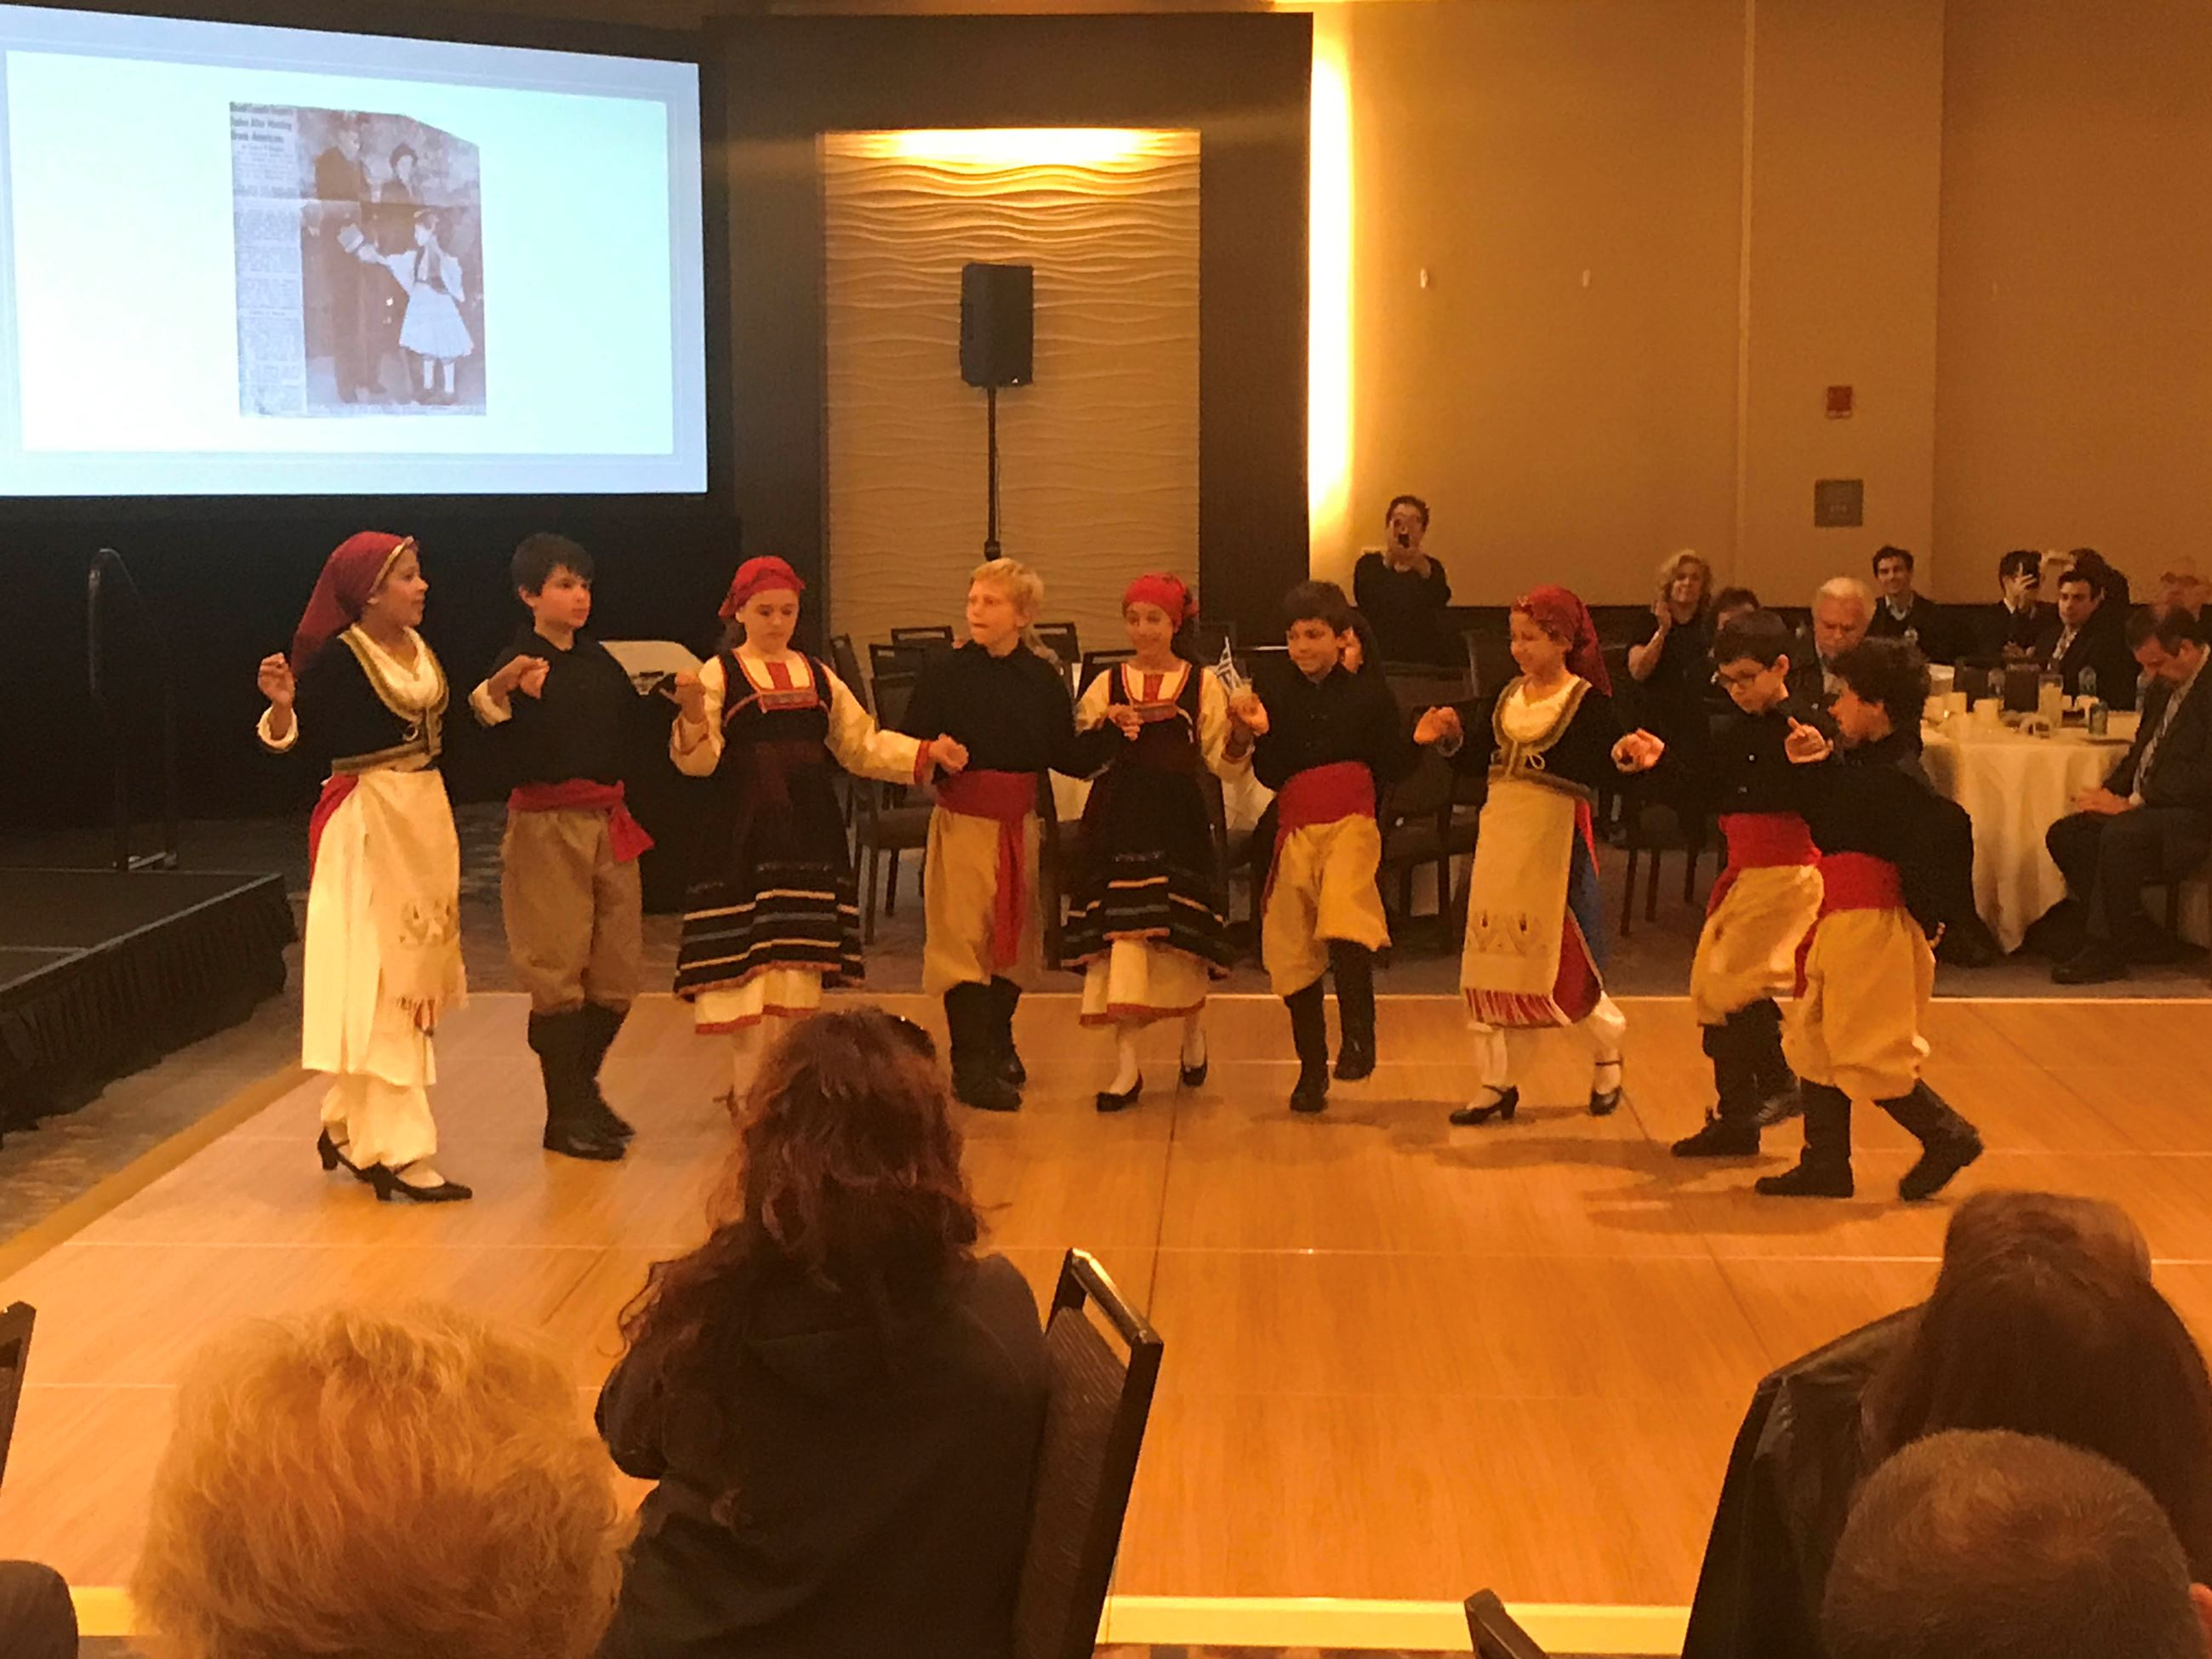 HARA Greek Dancers with picture of Queen's visit to Annapolis in background.